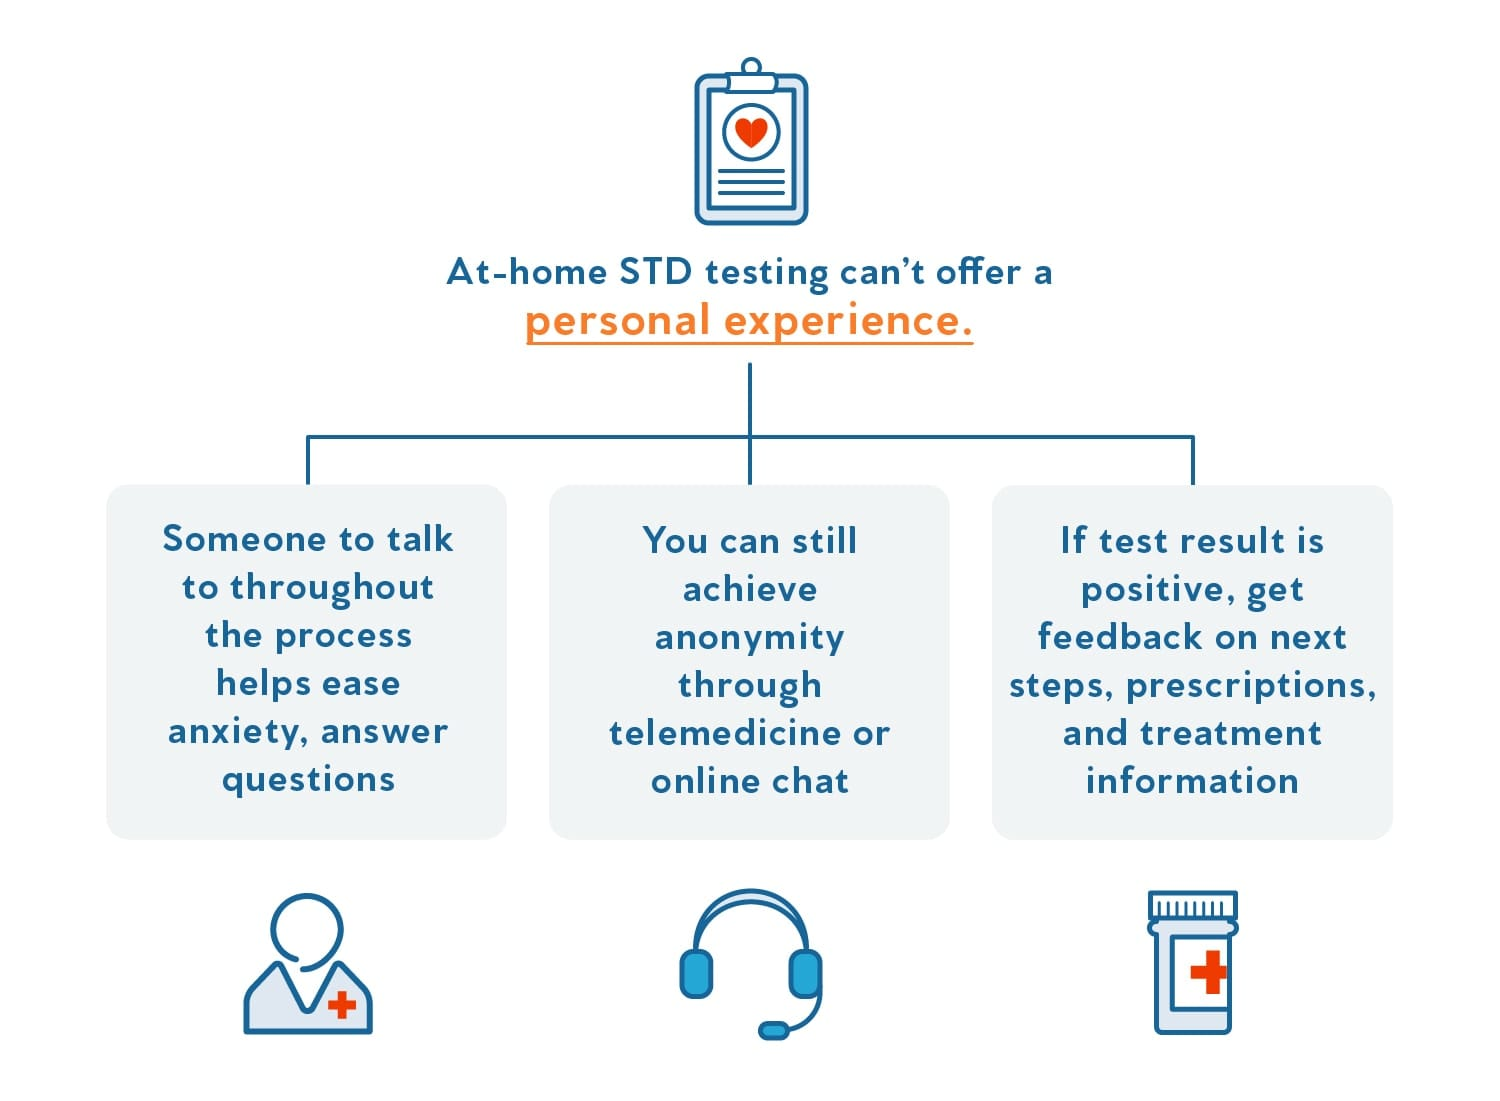 A graphic that illustrates how at-home STD testing is less personal.